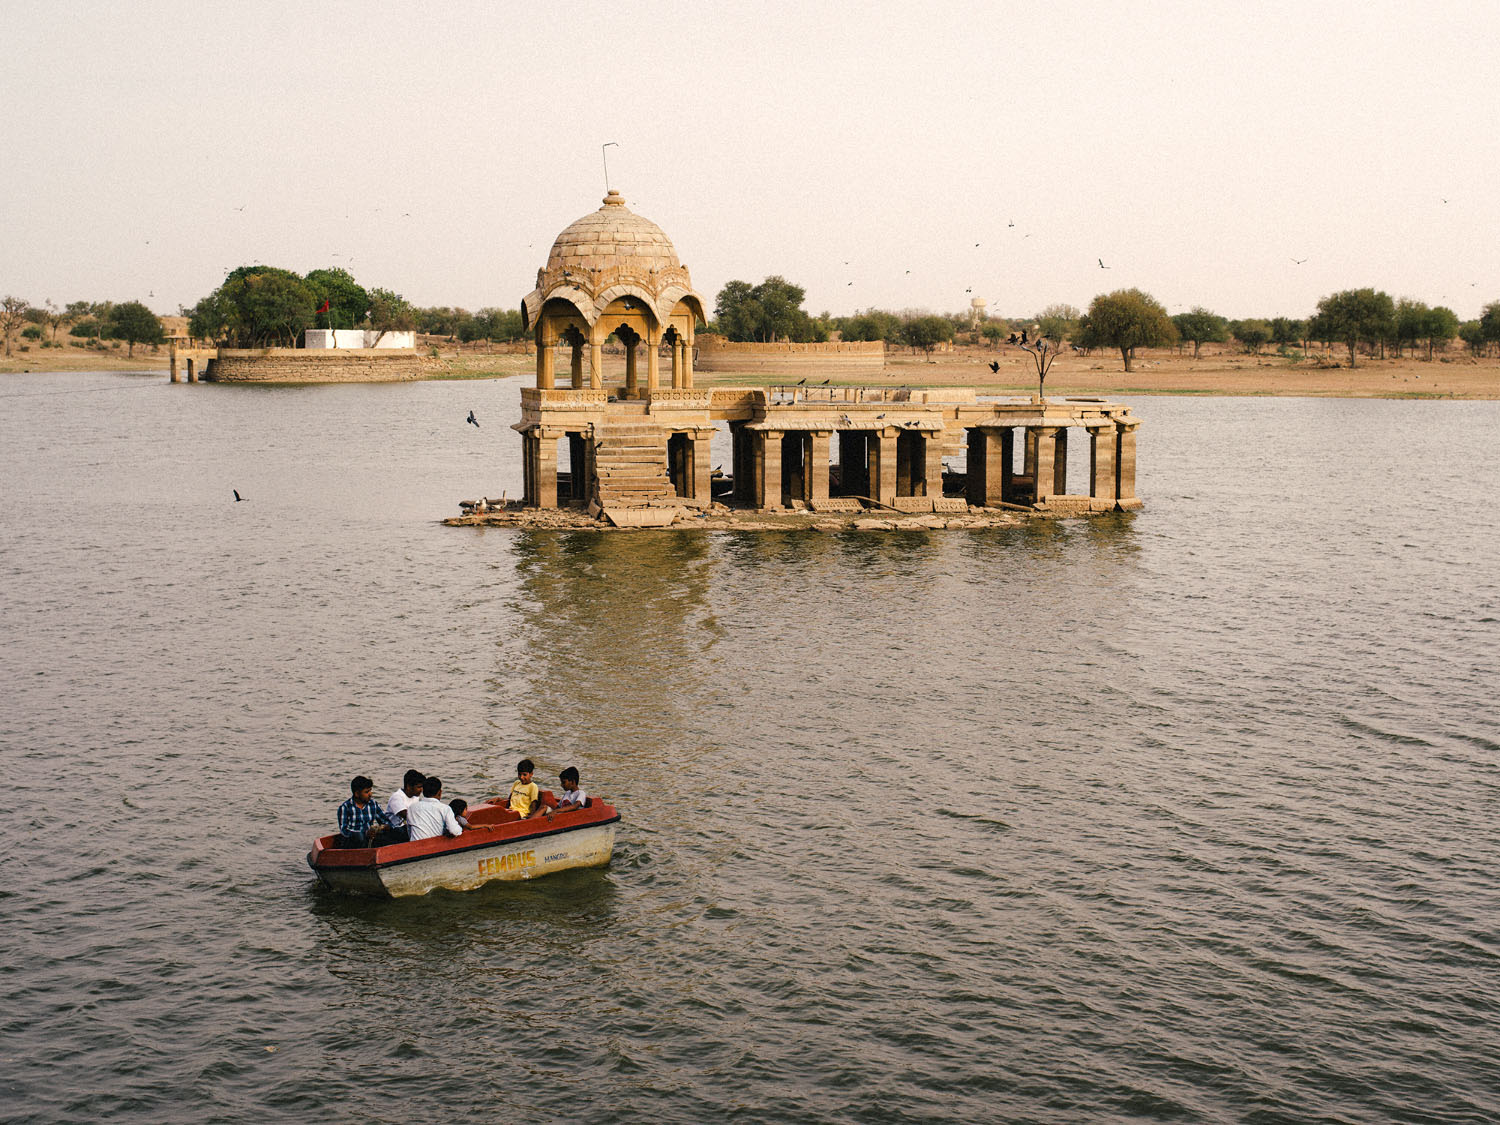 tourists on a boat in India - 7 Tips to Make Travel Photography Interesting Again